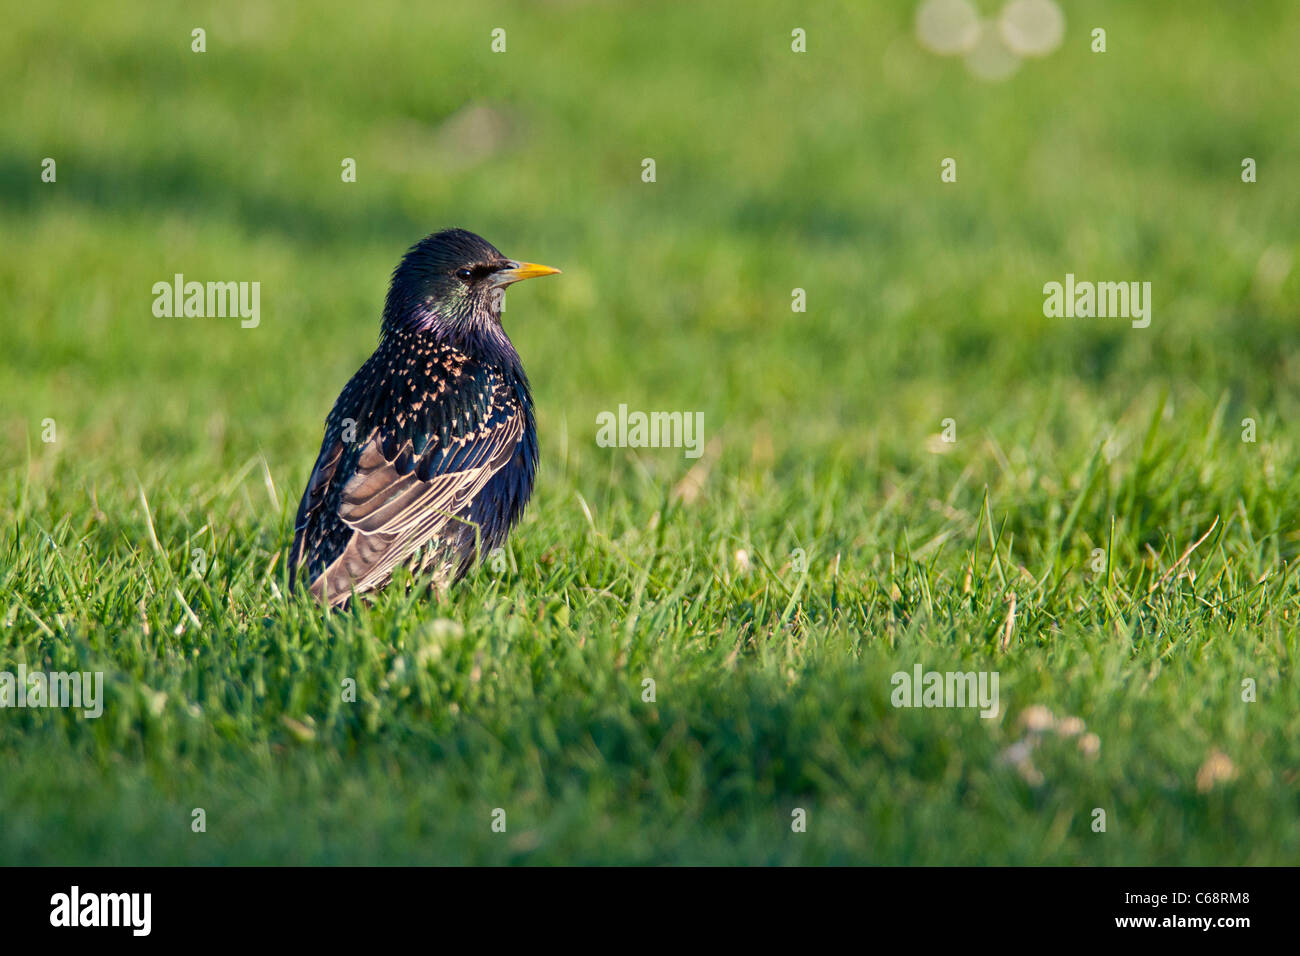 Sturnus vulgaris, Common Starling in the evening light, is searching for food on the ground. - Stock Image